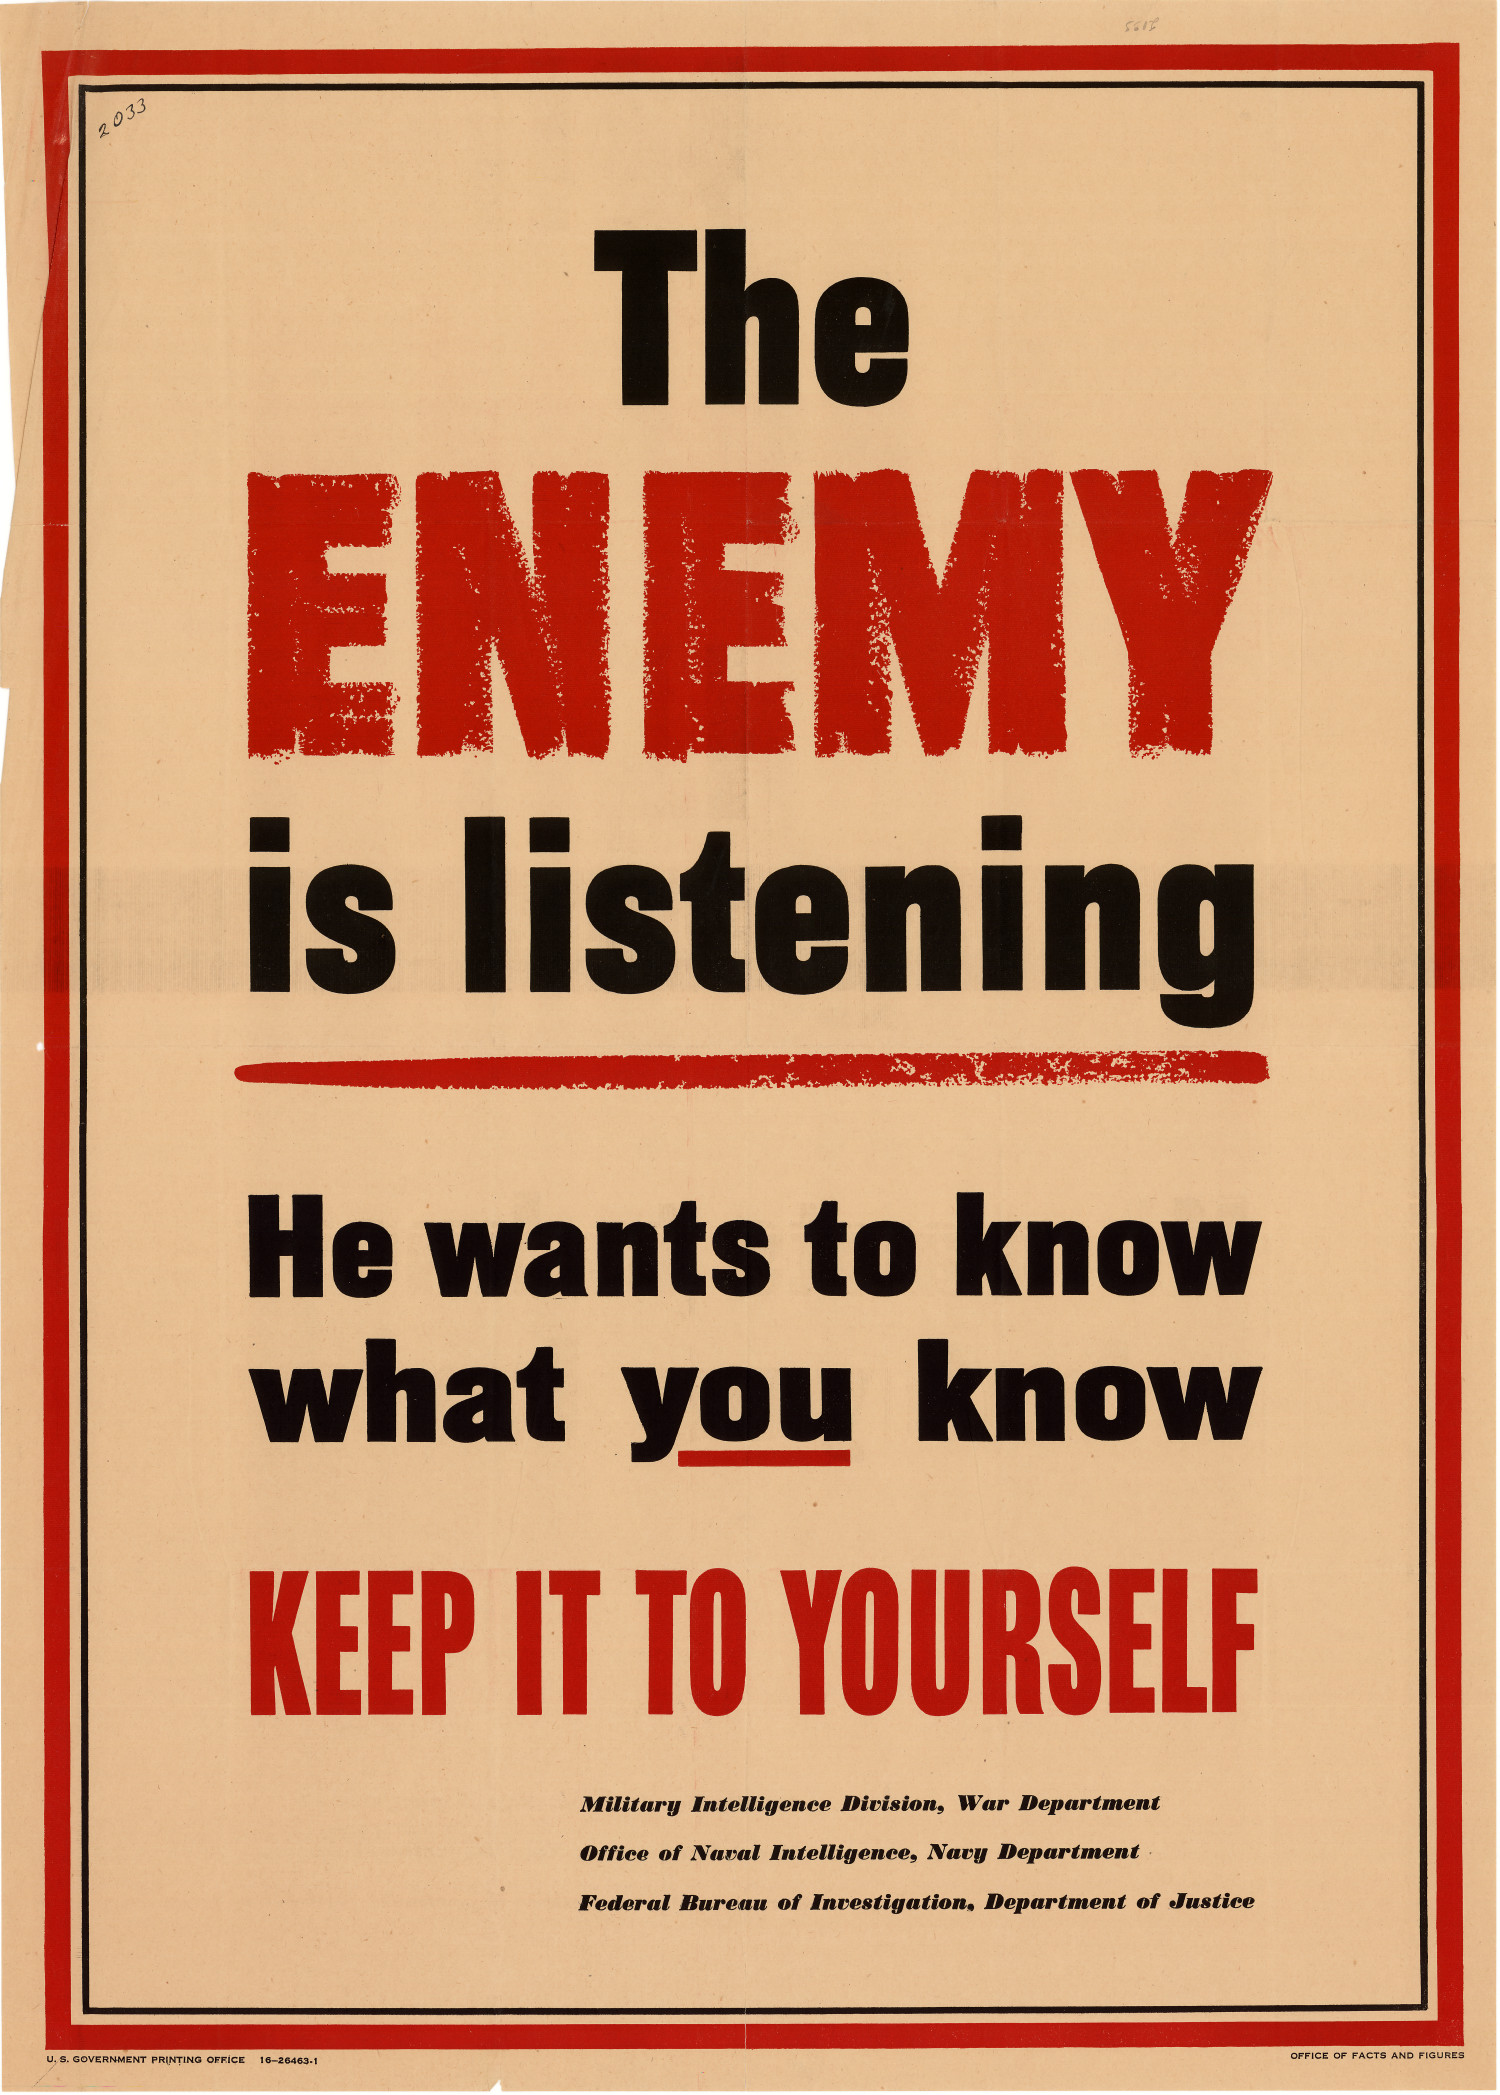 the enemy is listening   he wants to know what you know